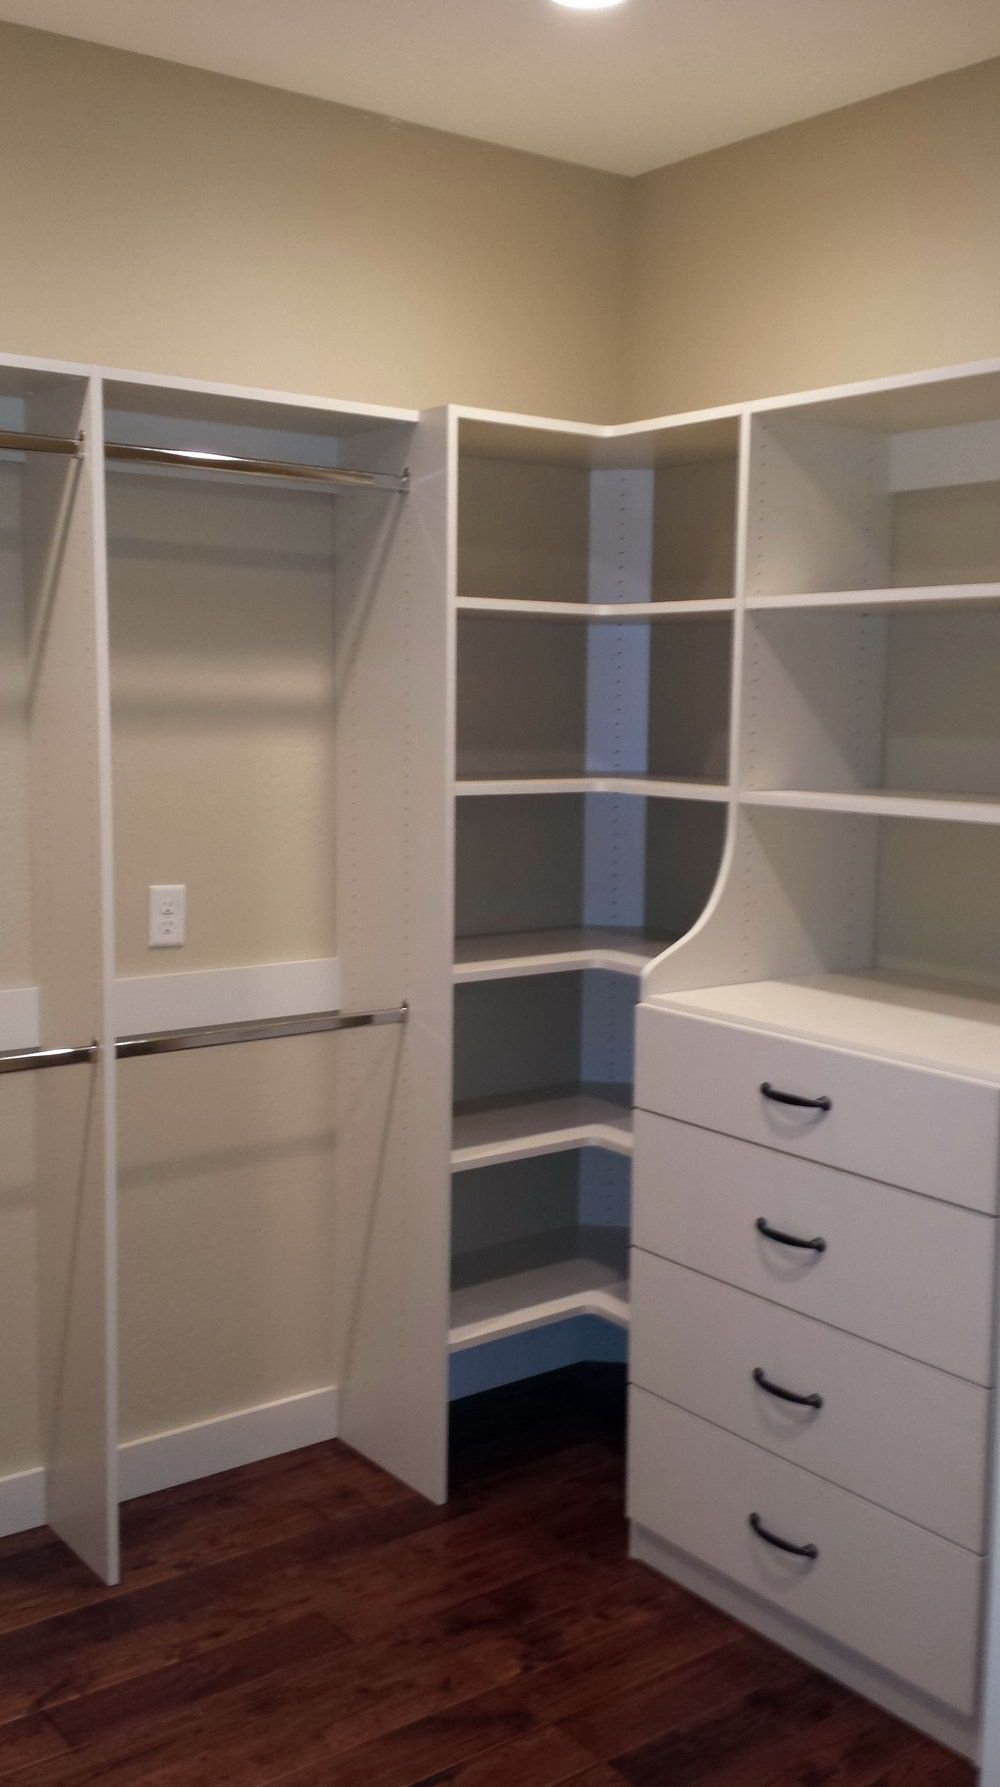 Closet Shelving Units With Drawers